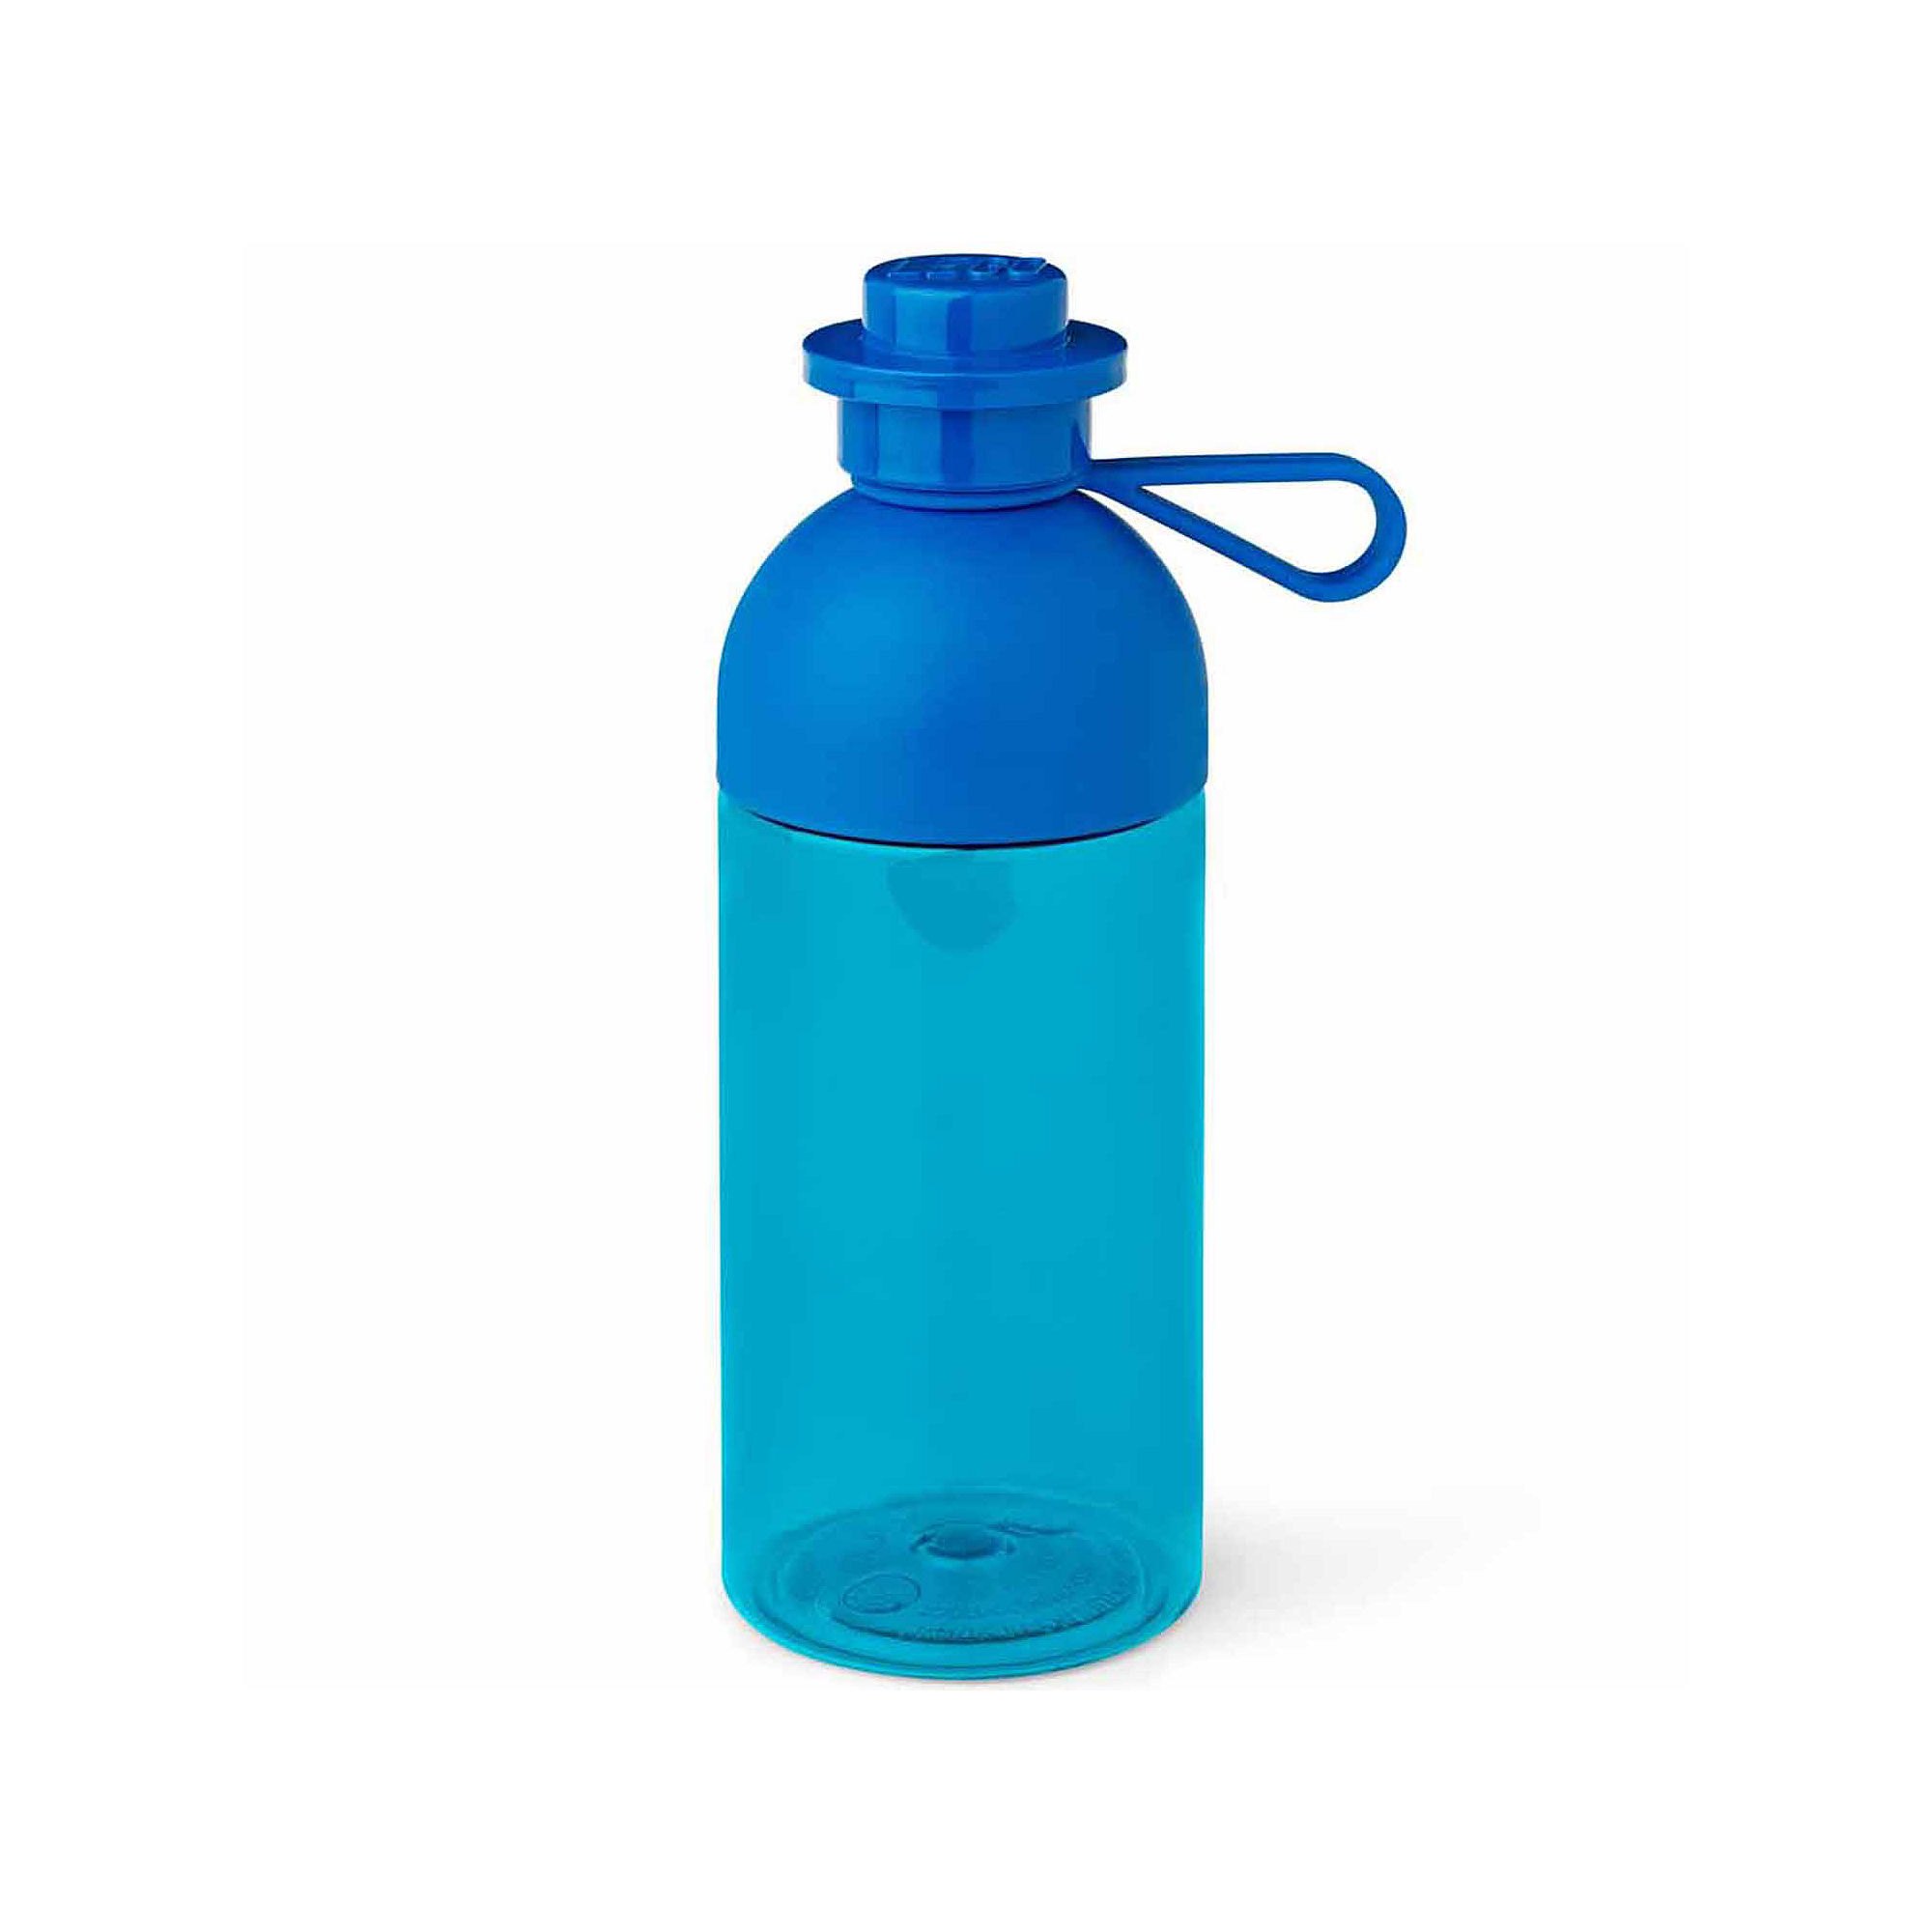 UPC 887988007456 product image for Water Bottle | upcitemdb.com